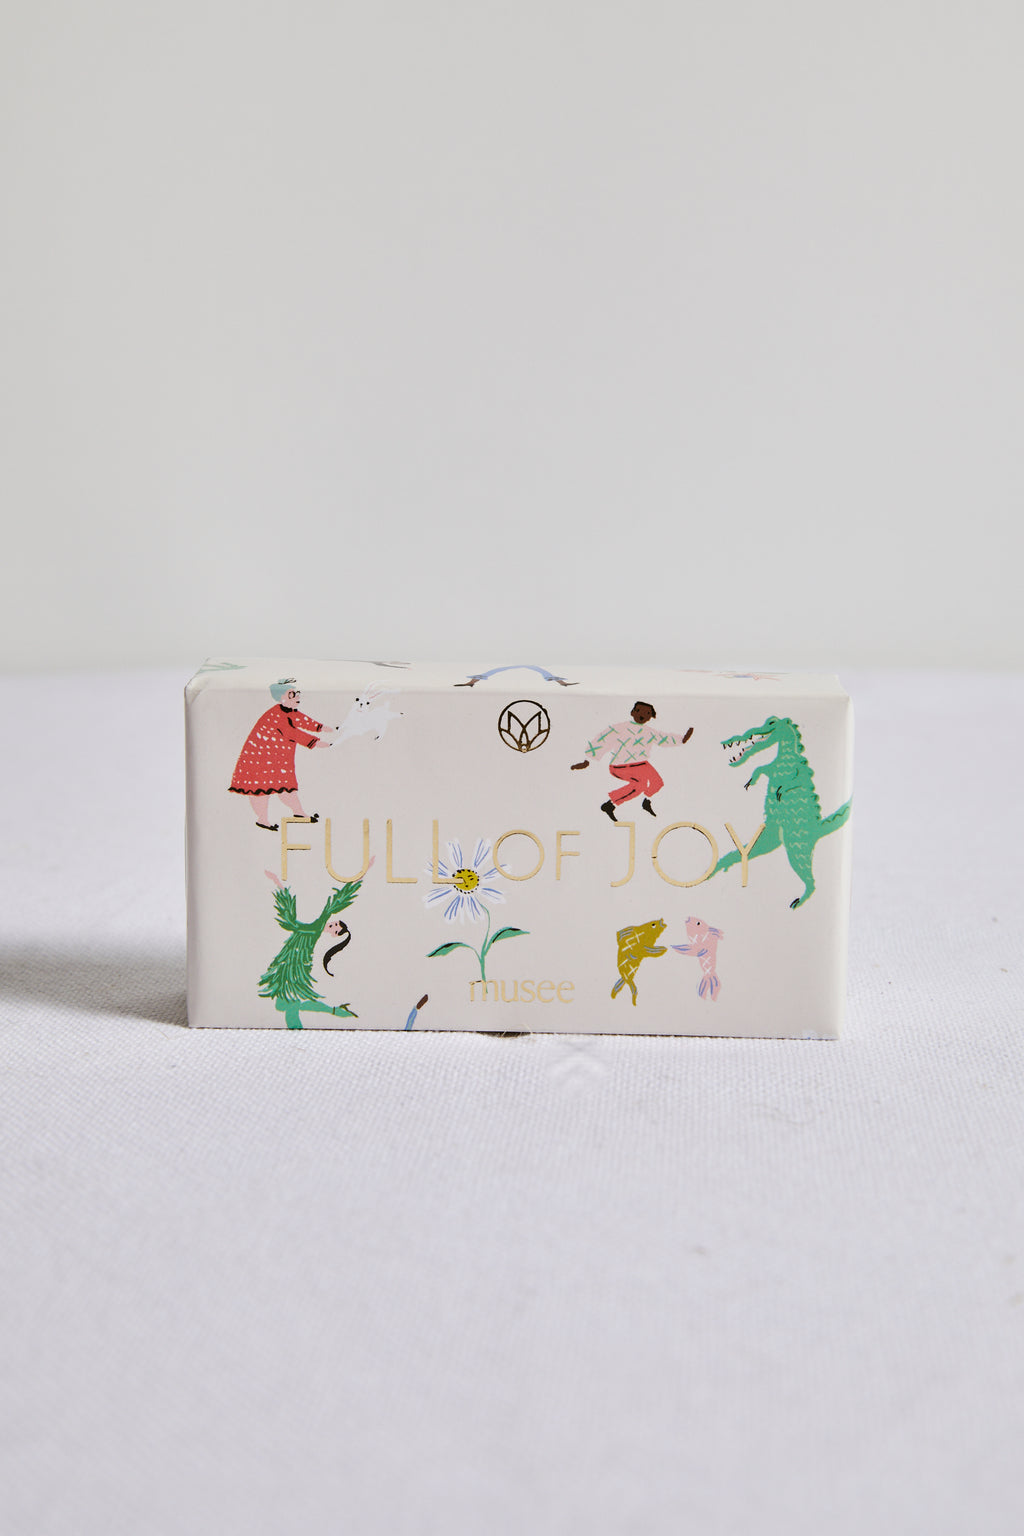 Full of Joy Grapefruit & Lemongrass Bar Soap - picnic-sf